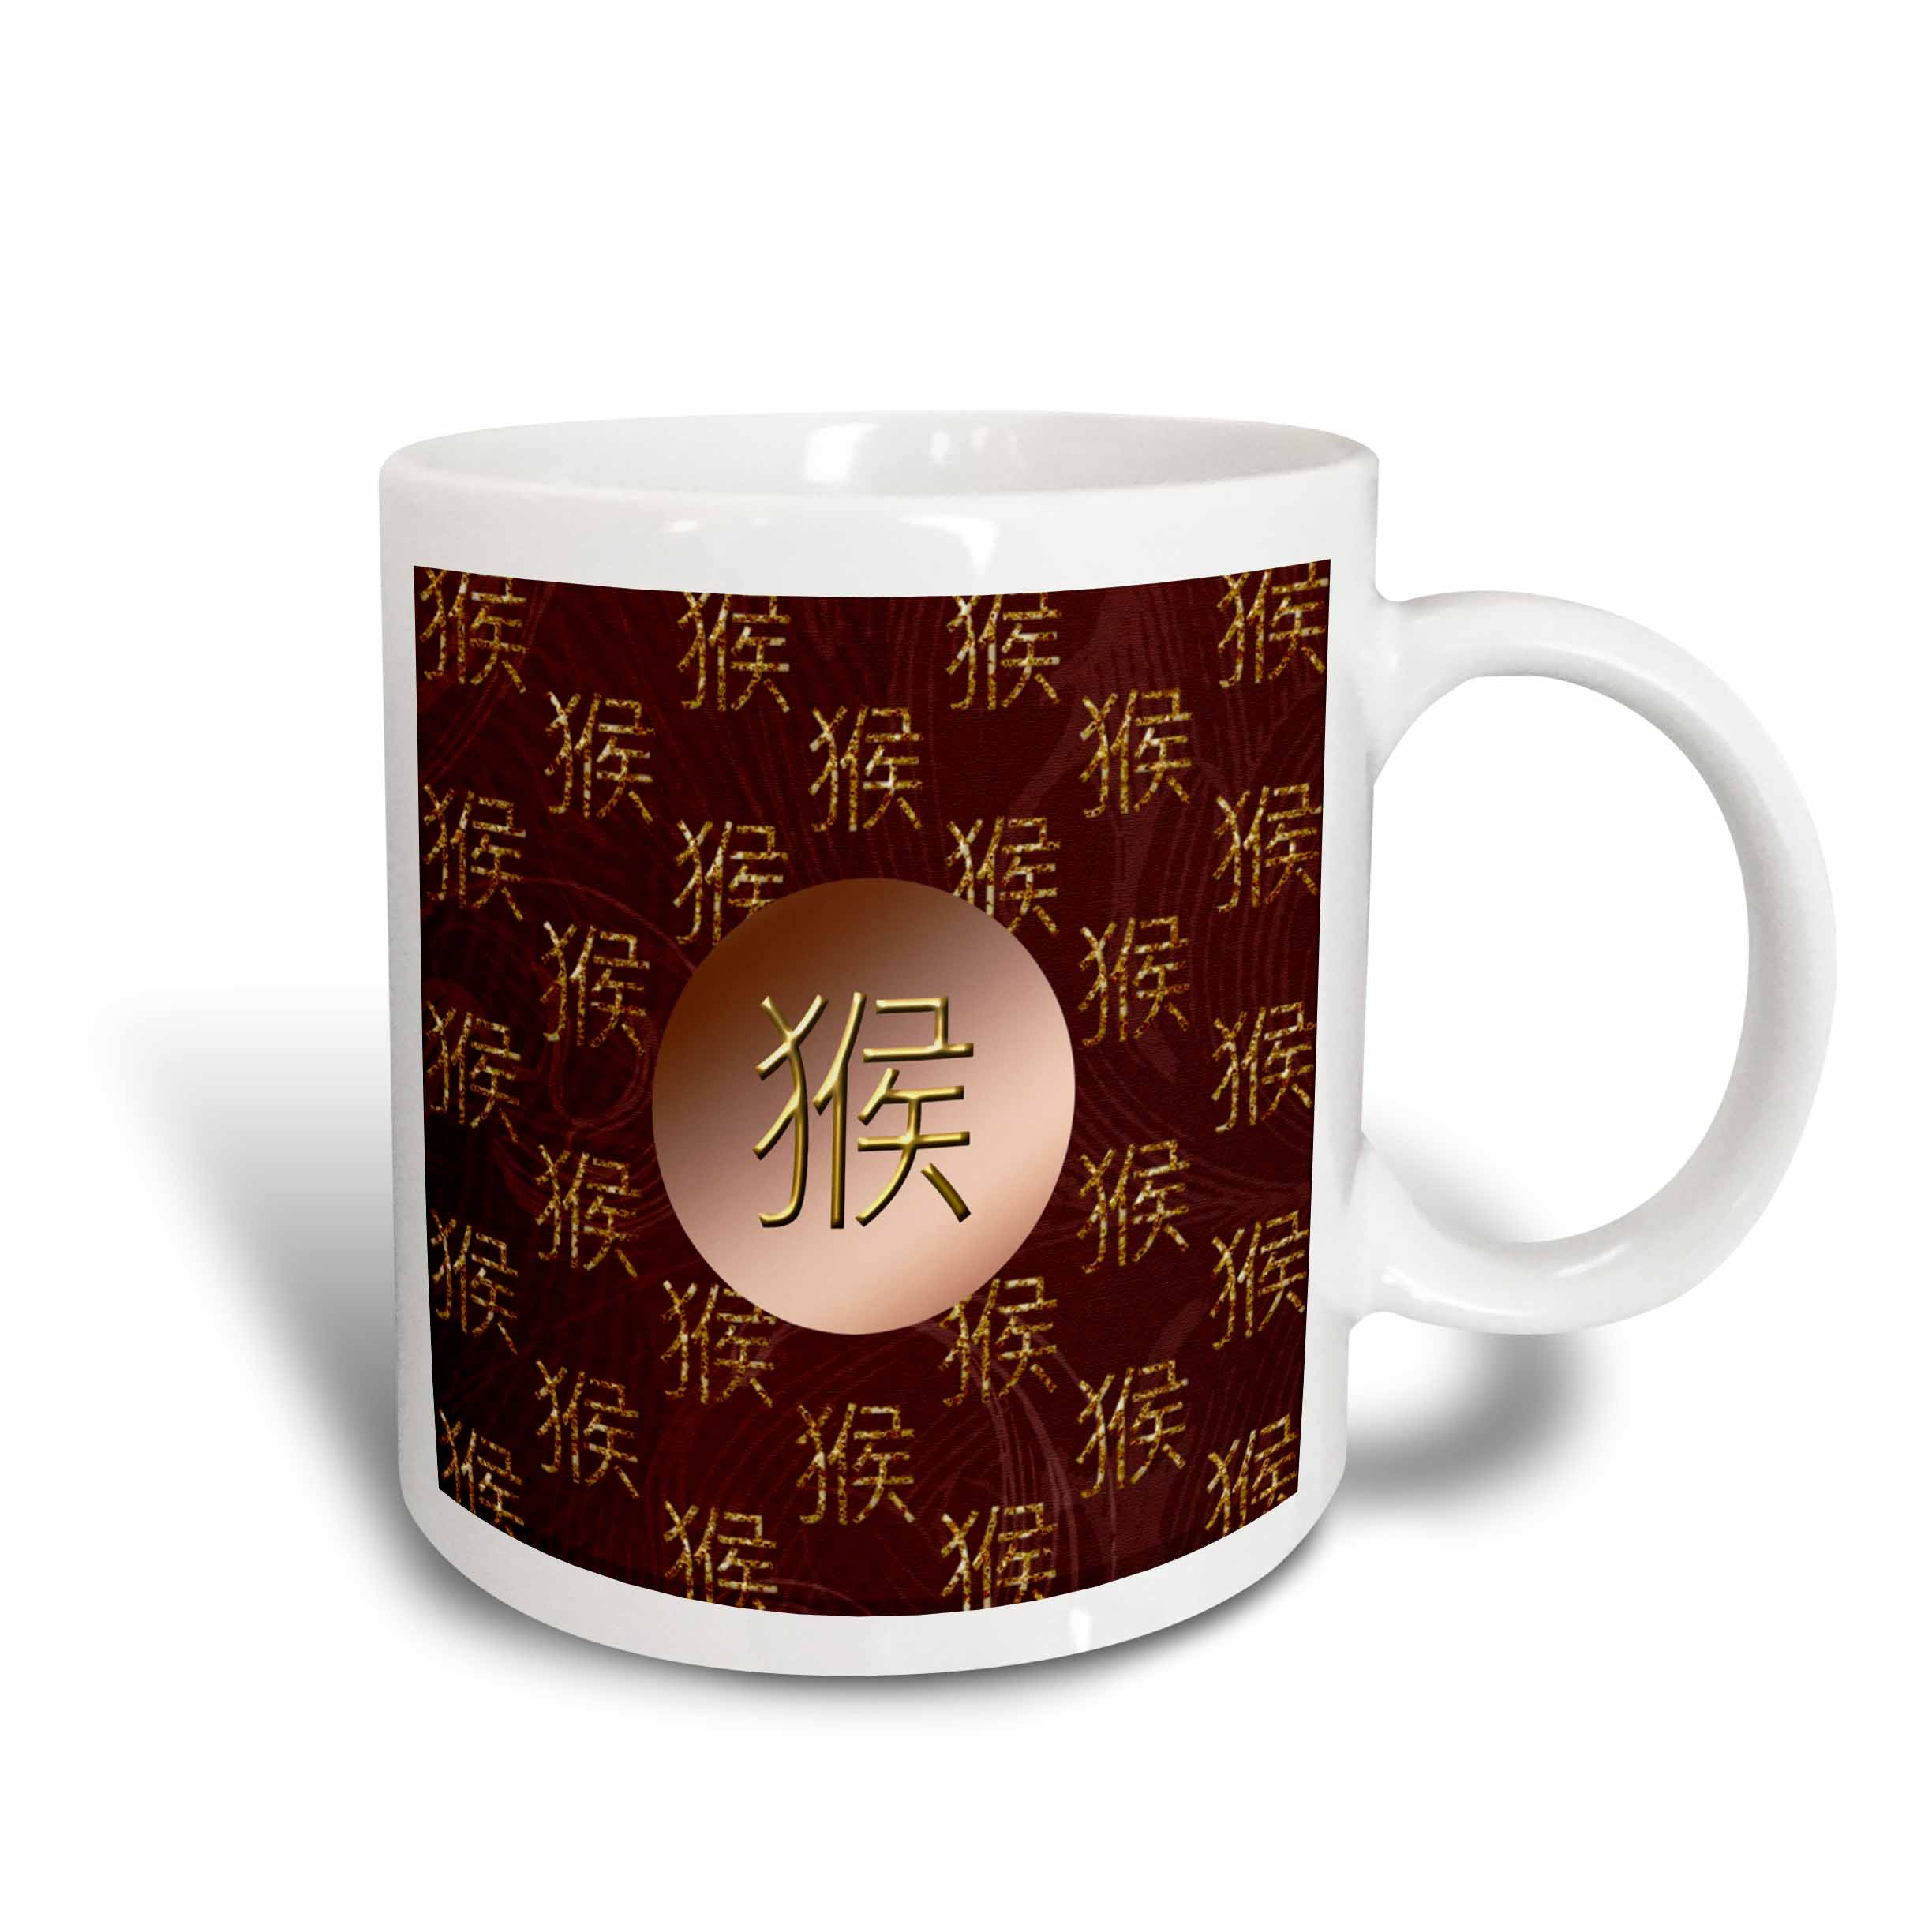 3dRose Chinese Sign of the Monkey, Copper and Maroon, Ceramic Mug, 15-ounce